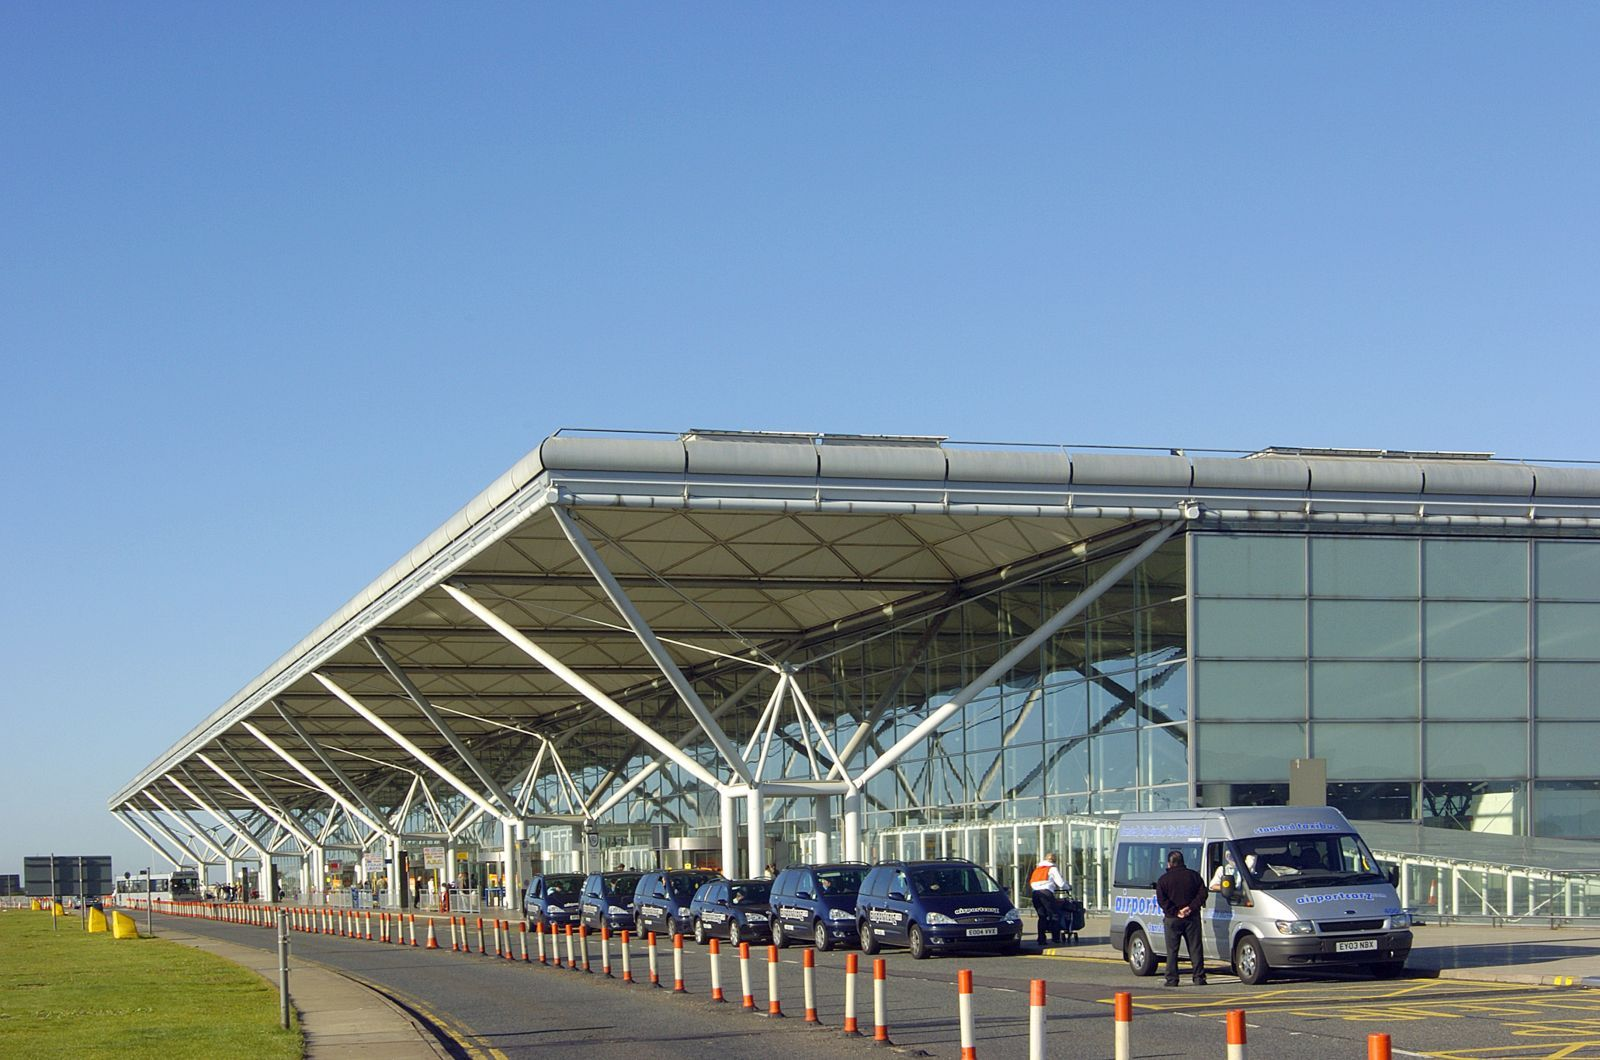 London stansted airport foster partners aeroportos